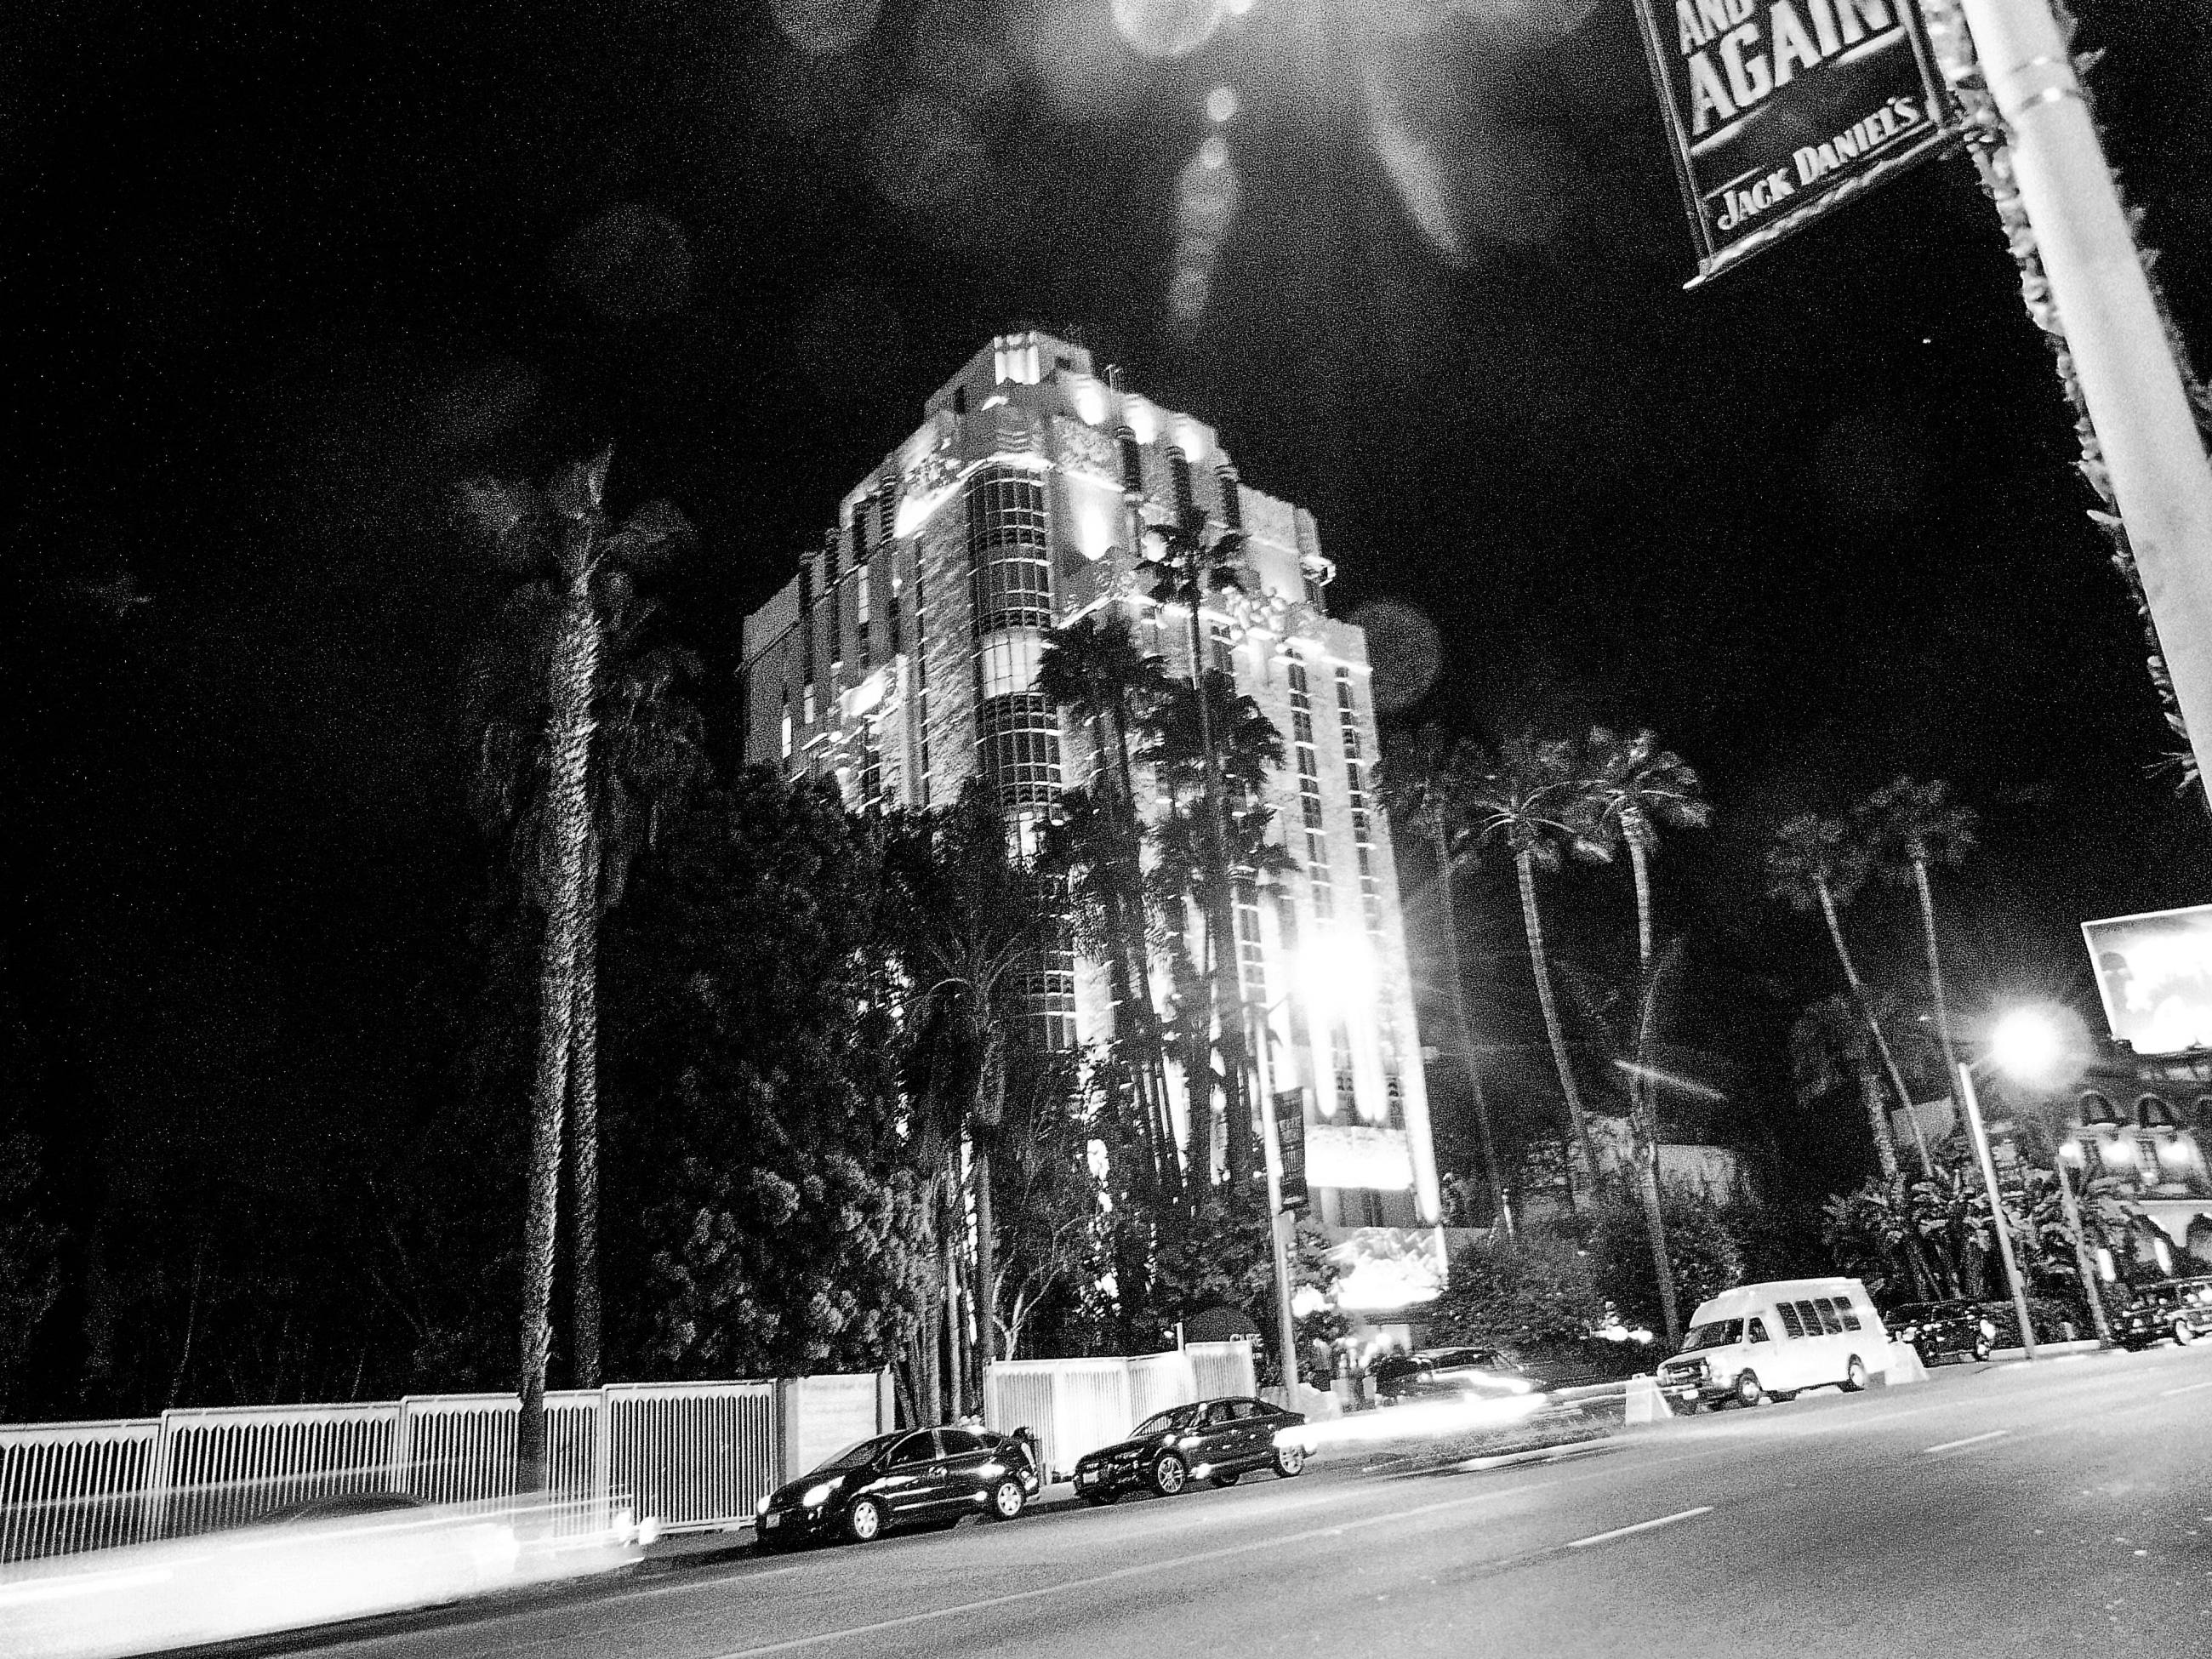 Sunset Tower Hotel on the Sunset Strip